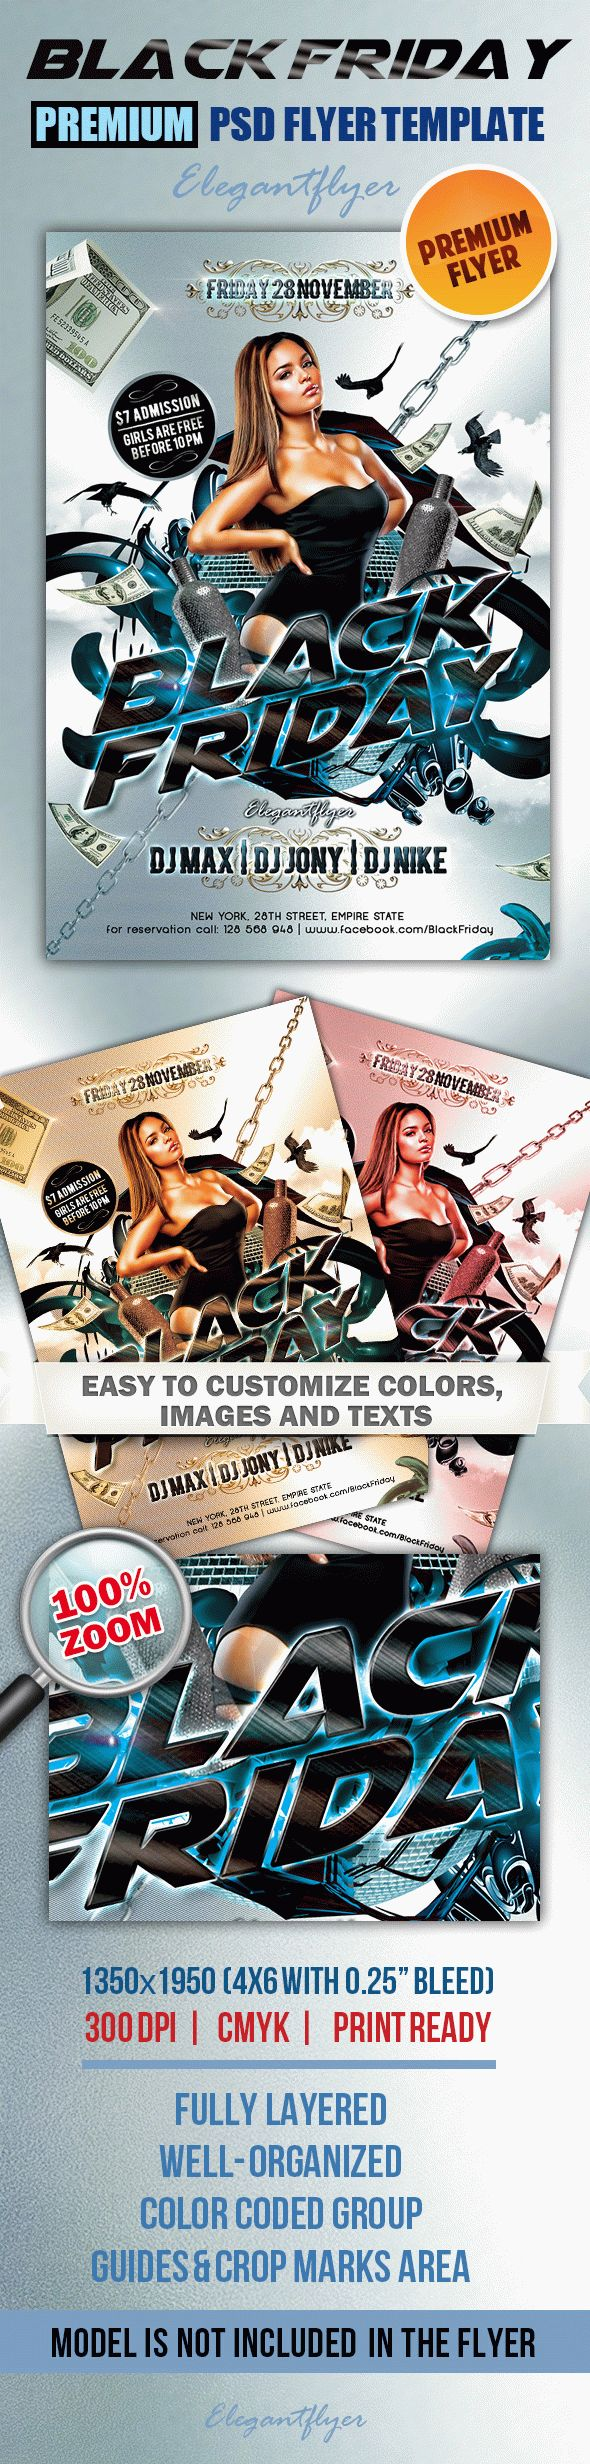 Woman Black Friday Flyer Template